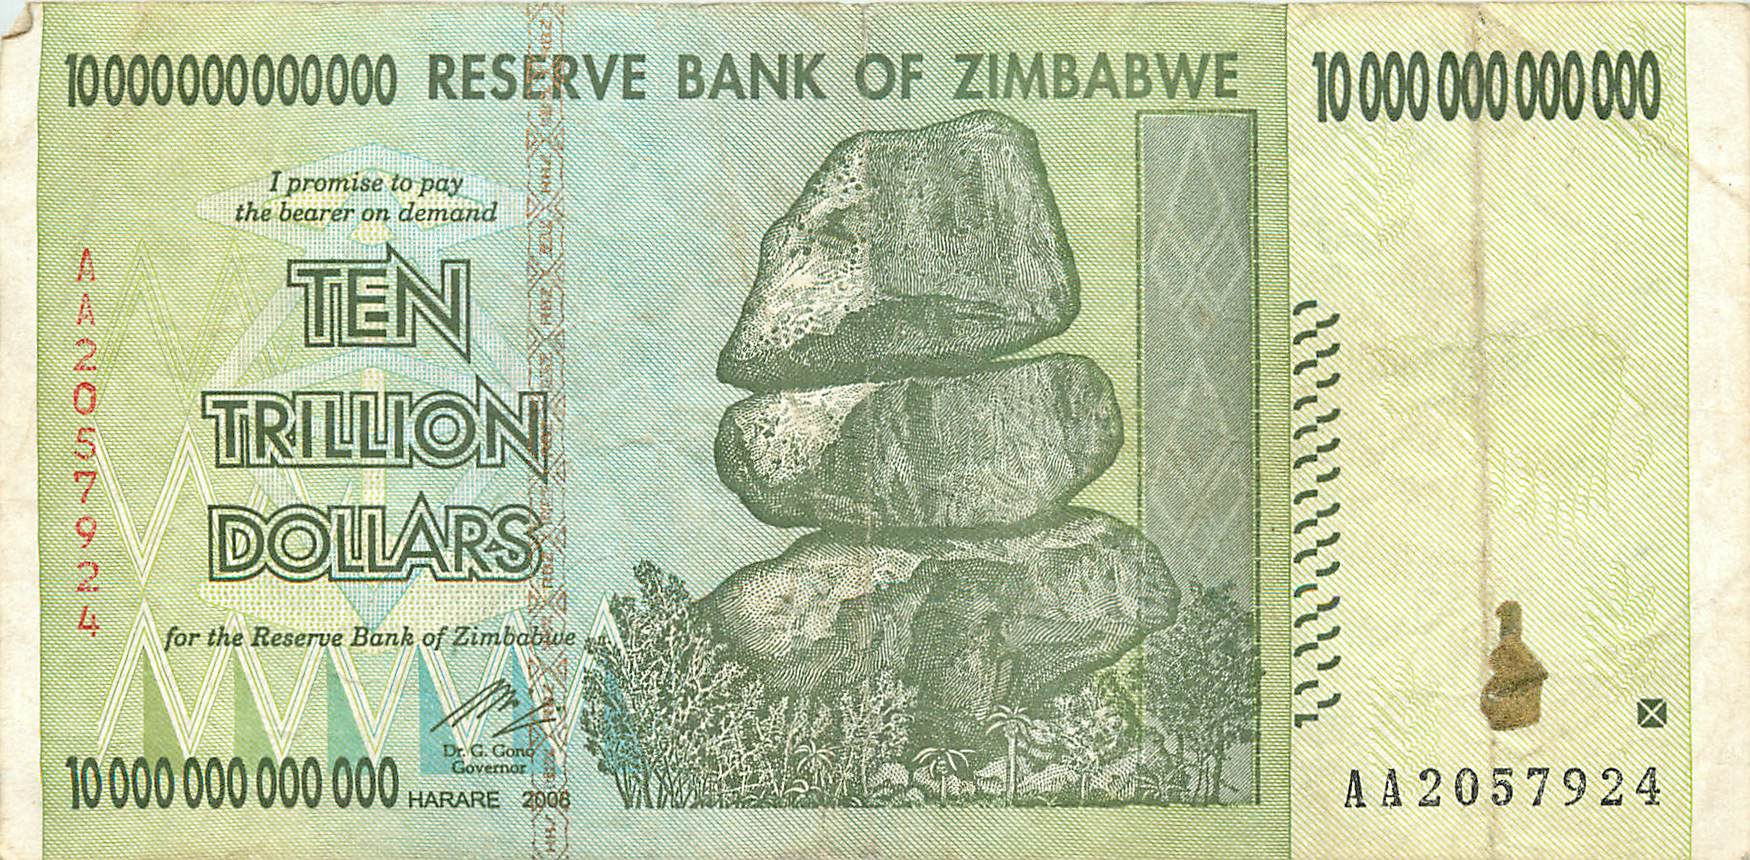 ten trillion Zimbabwe dollars. Not the largest currency in circulation, but close.